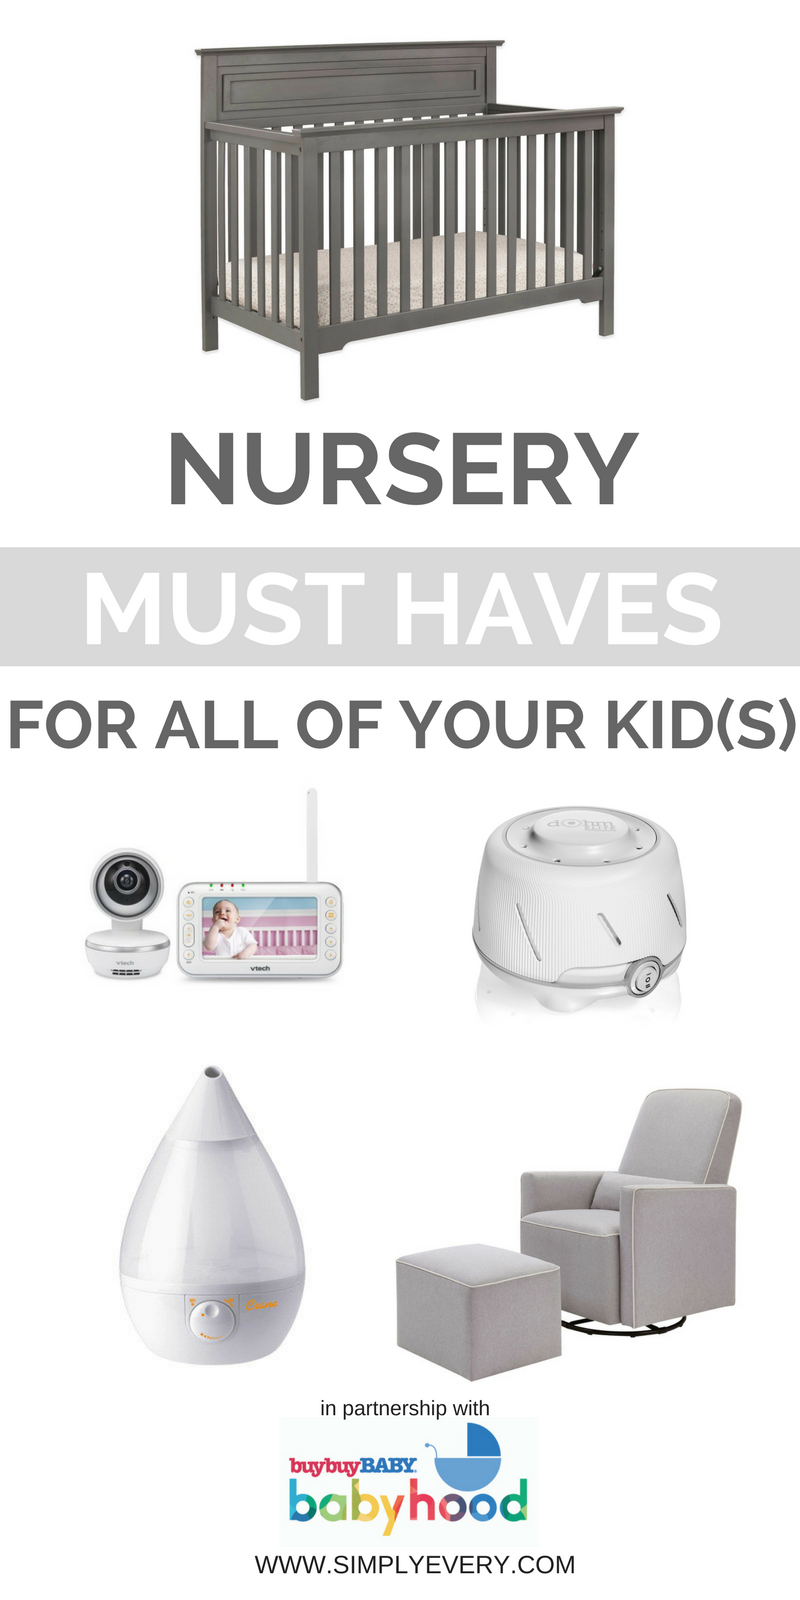 Top 5 Nursery Must Haves for All Your Kids